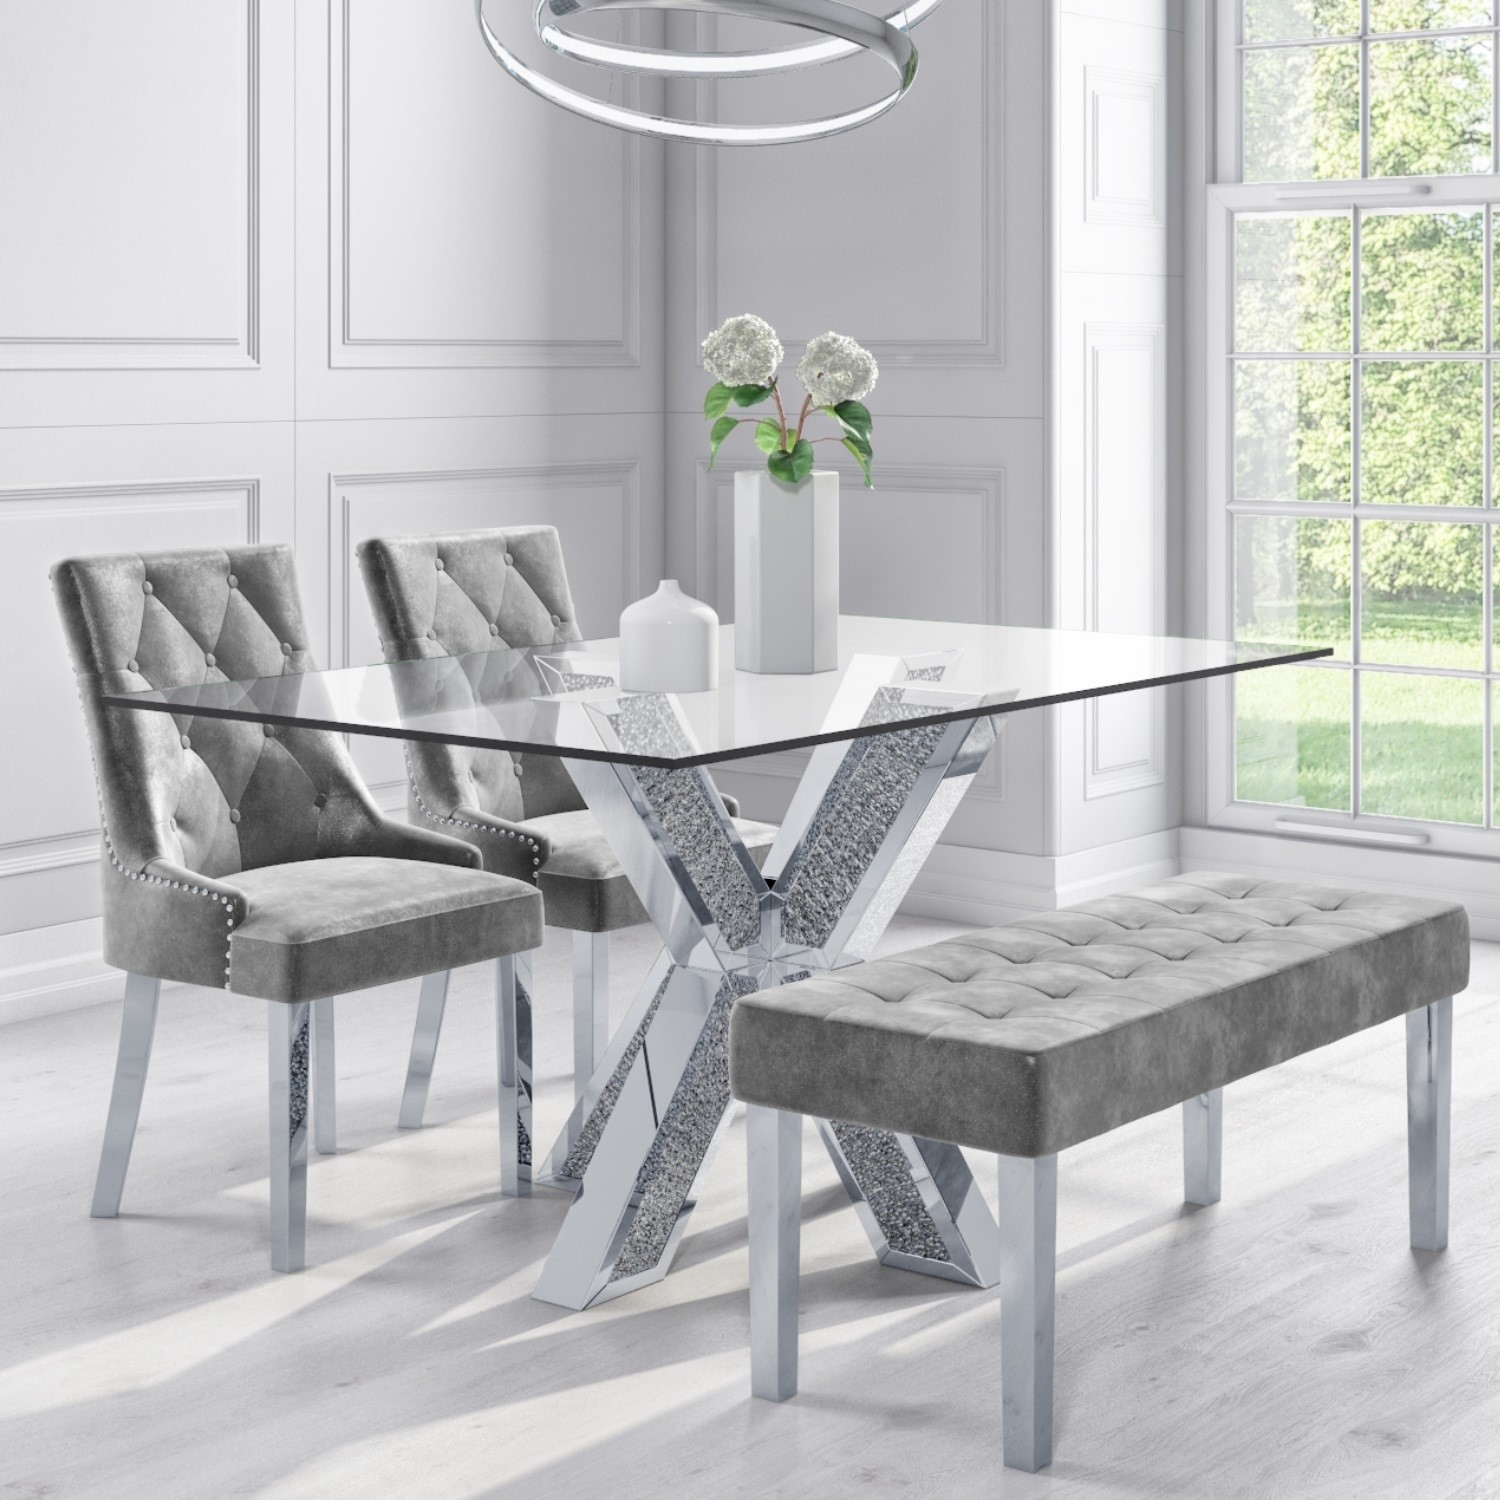 Glass Mirrored Dining Set With 2 Grey Velvet Chairs 1 Grey Velvet Bench Jade Boutique Furniture123